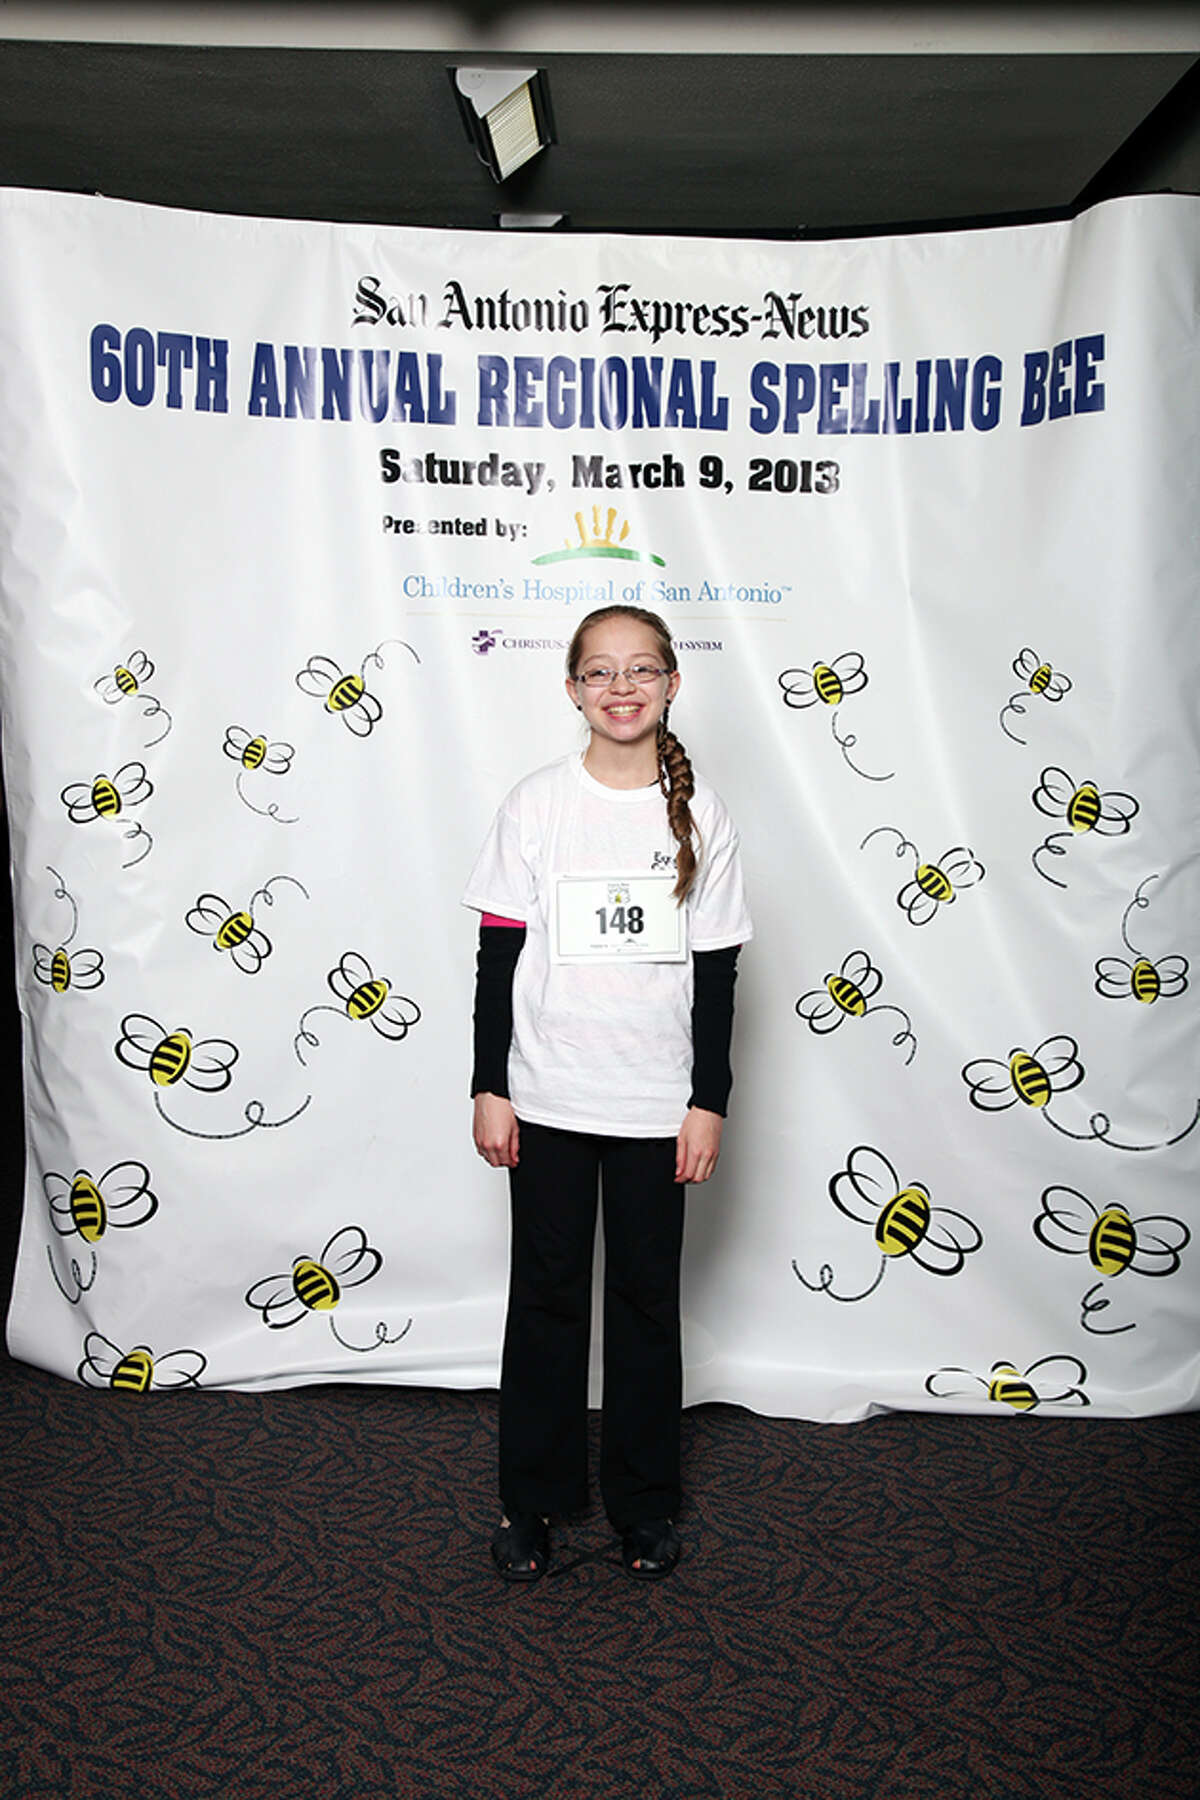 60th Annual San Antonio Express-News Regional Spelling Bee Presented by Children's Hospital of San Antonio